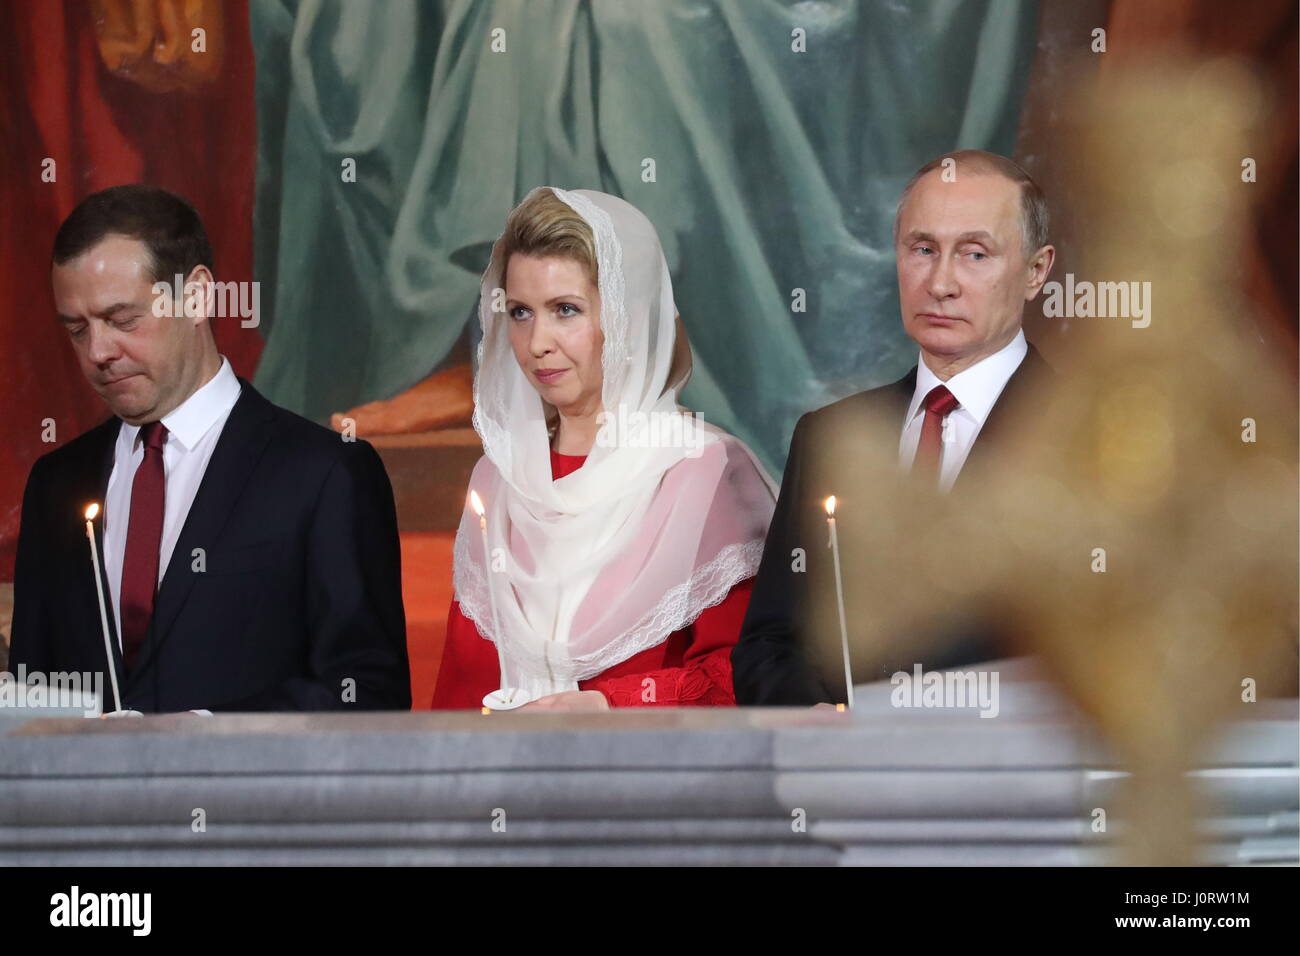 Son of Leonid Parfenov played the wedding for the second time 09/08/2015 39